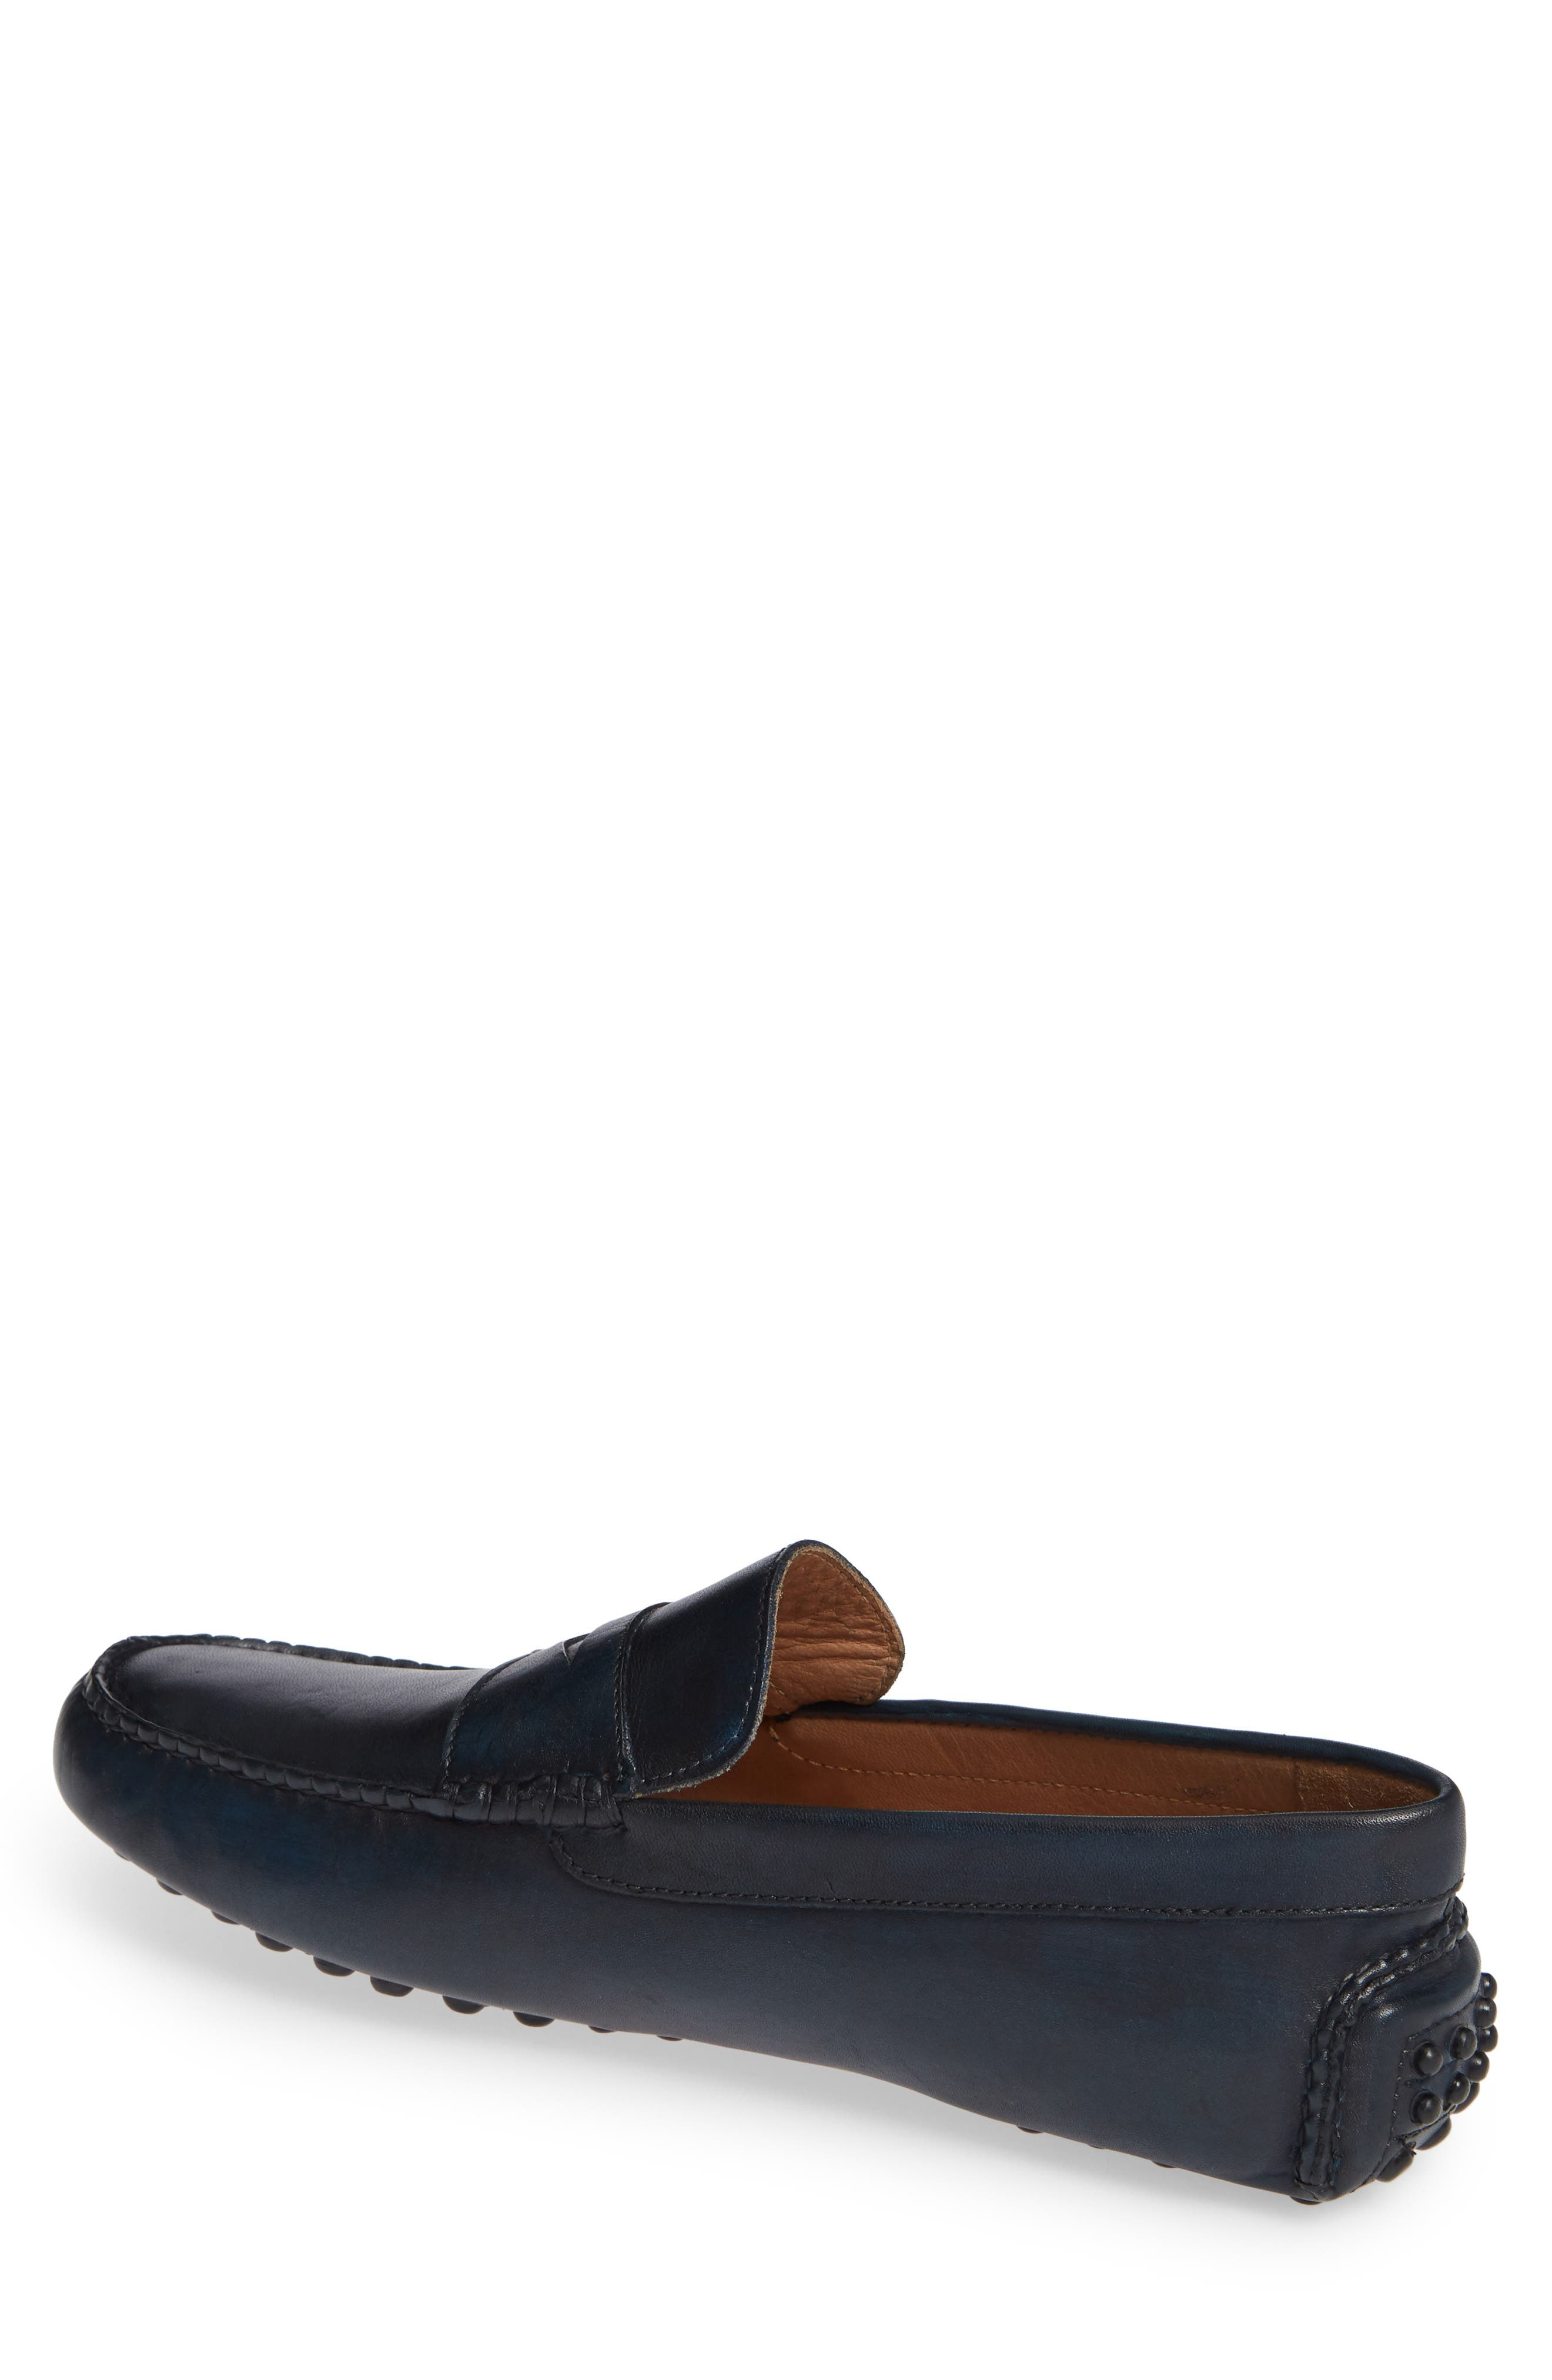 Eaton Driving Shoe,                             Alternate thumbnail 2, color,                             NAVY LEATHER